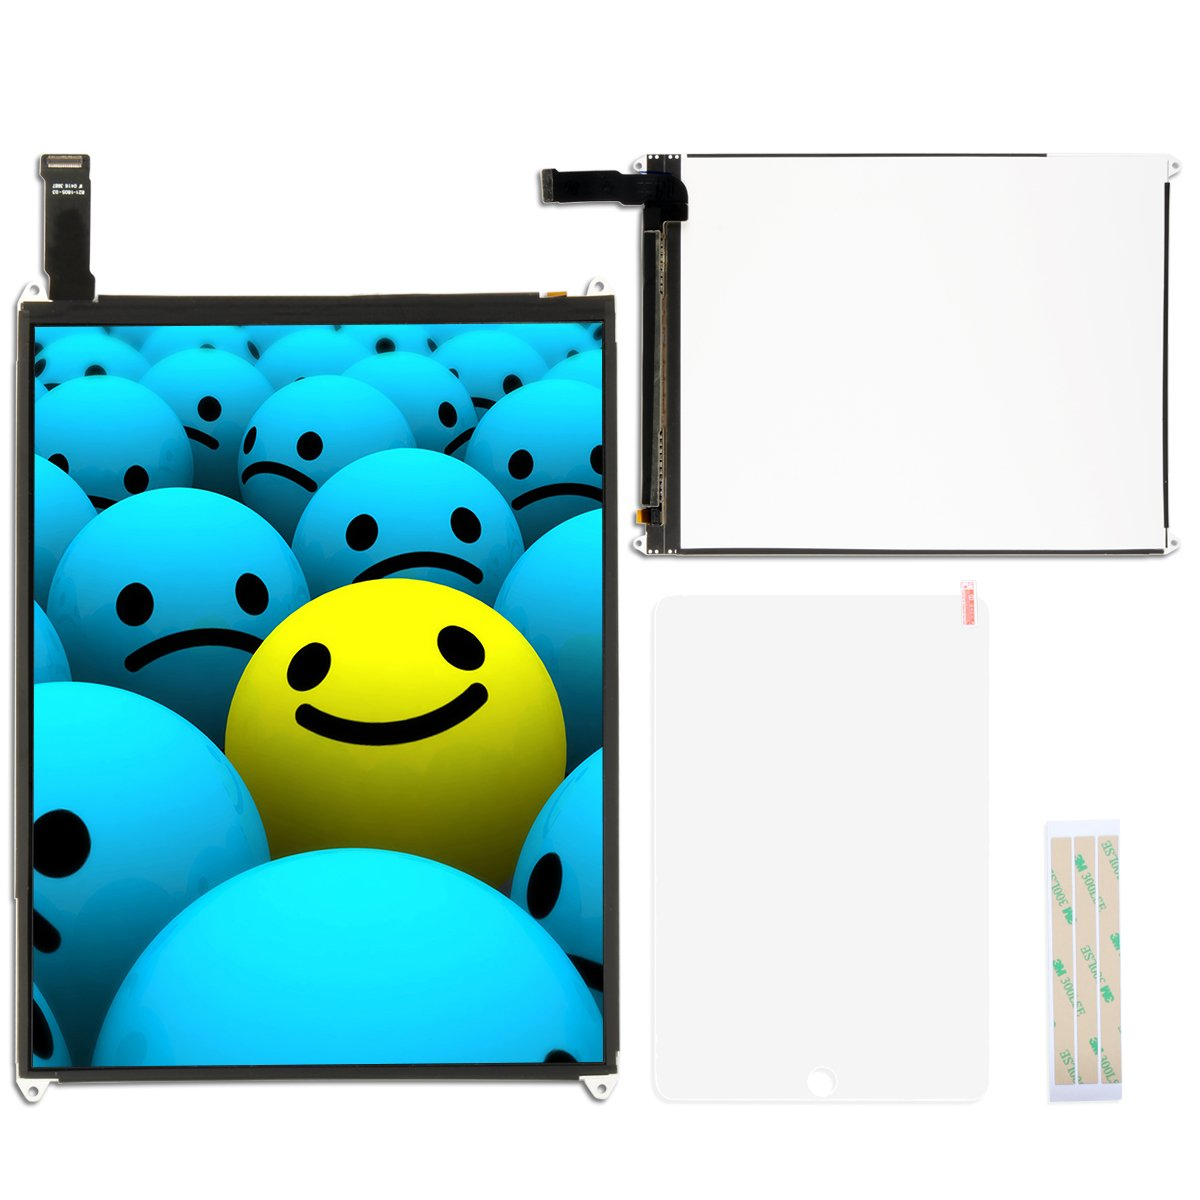 Parts Replacement LCD Display Screen for iPad Mini 7.9'' A1432 A1454 A1455 LCD Display Screen Panel Repair Srjtek